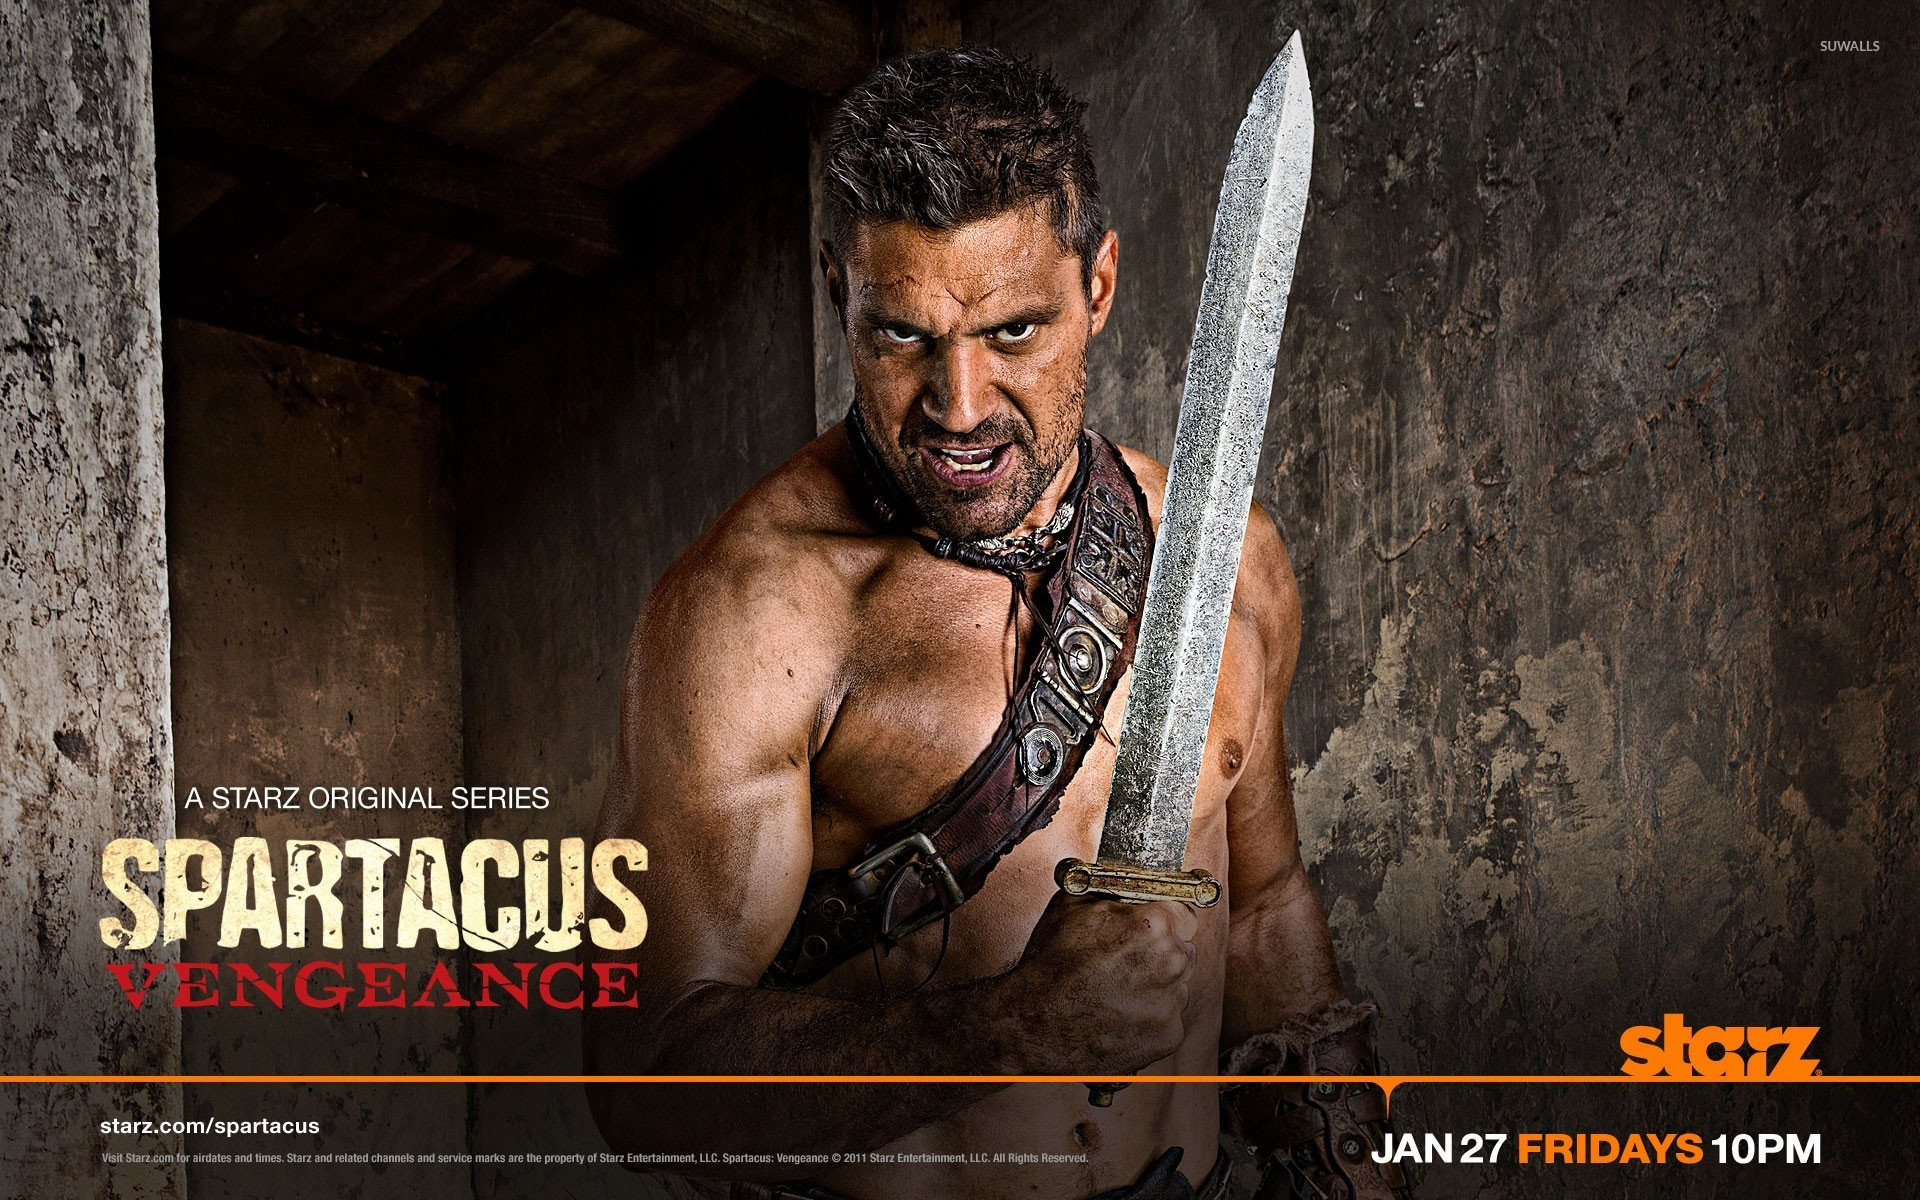 spartacus vengeance all episodes free download